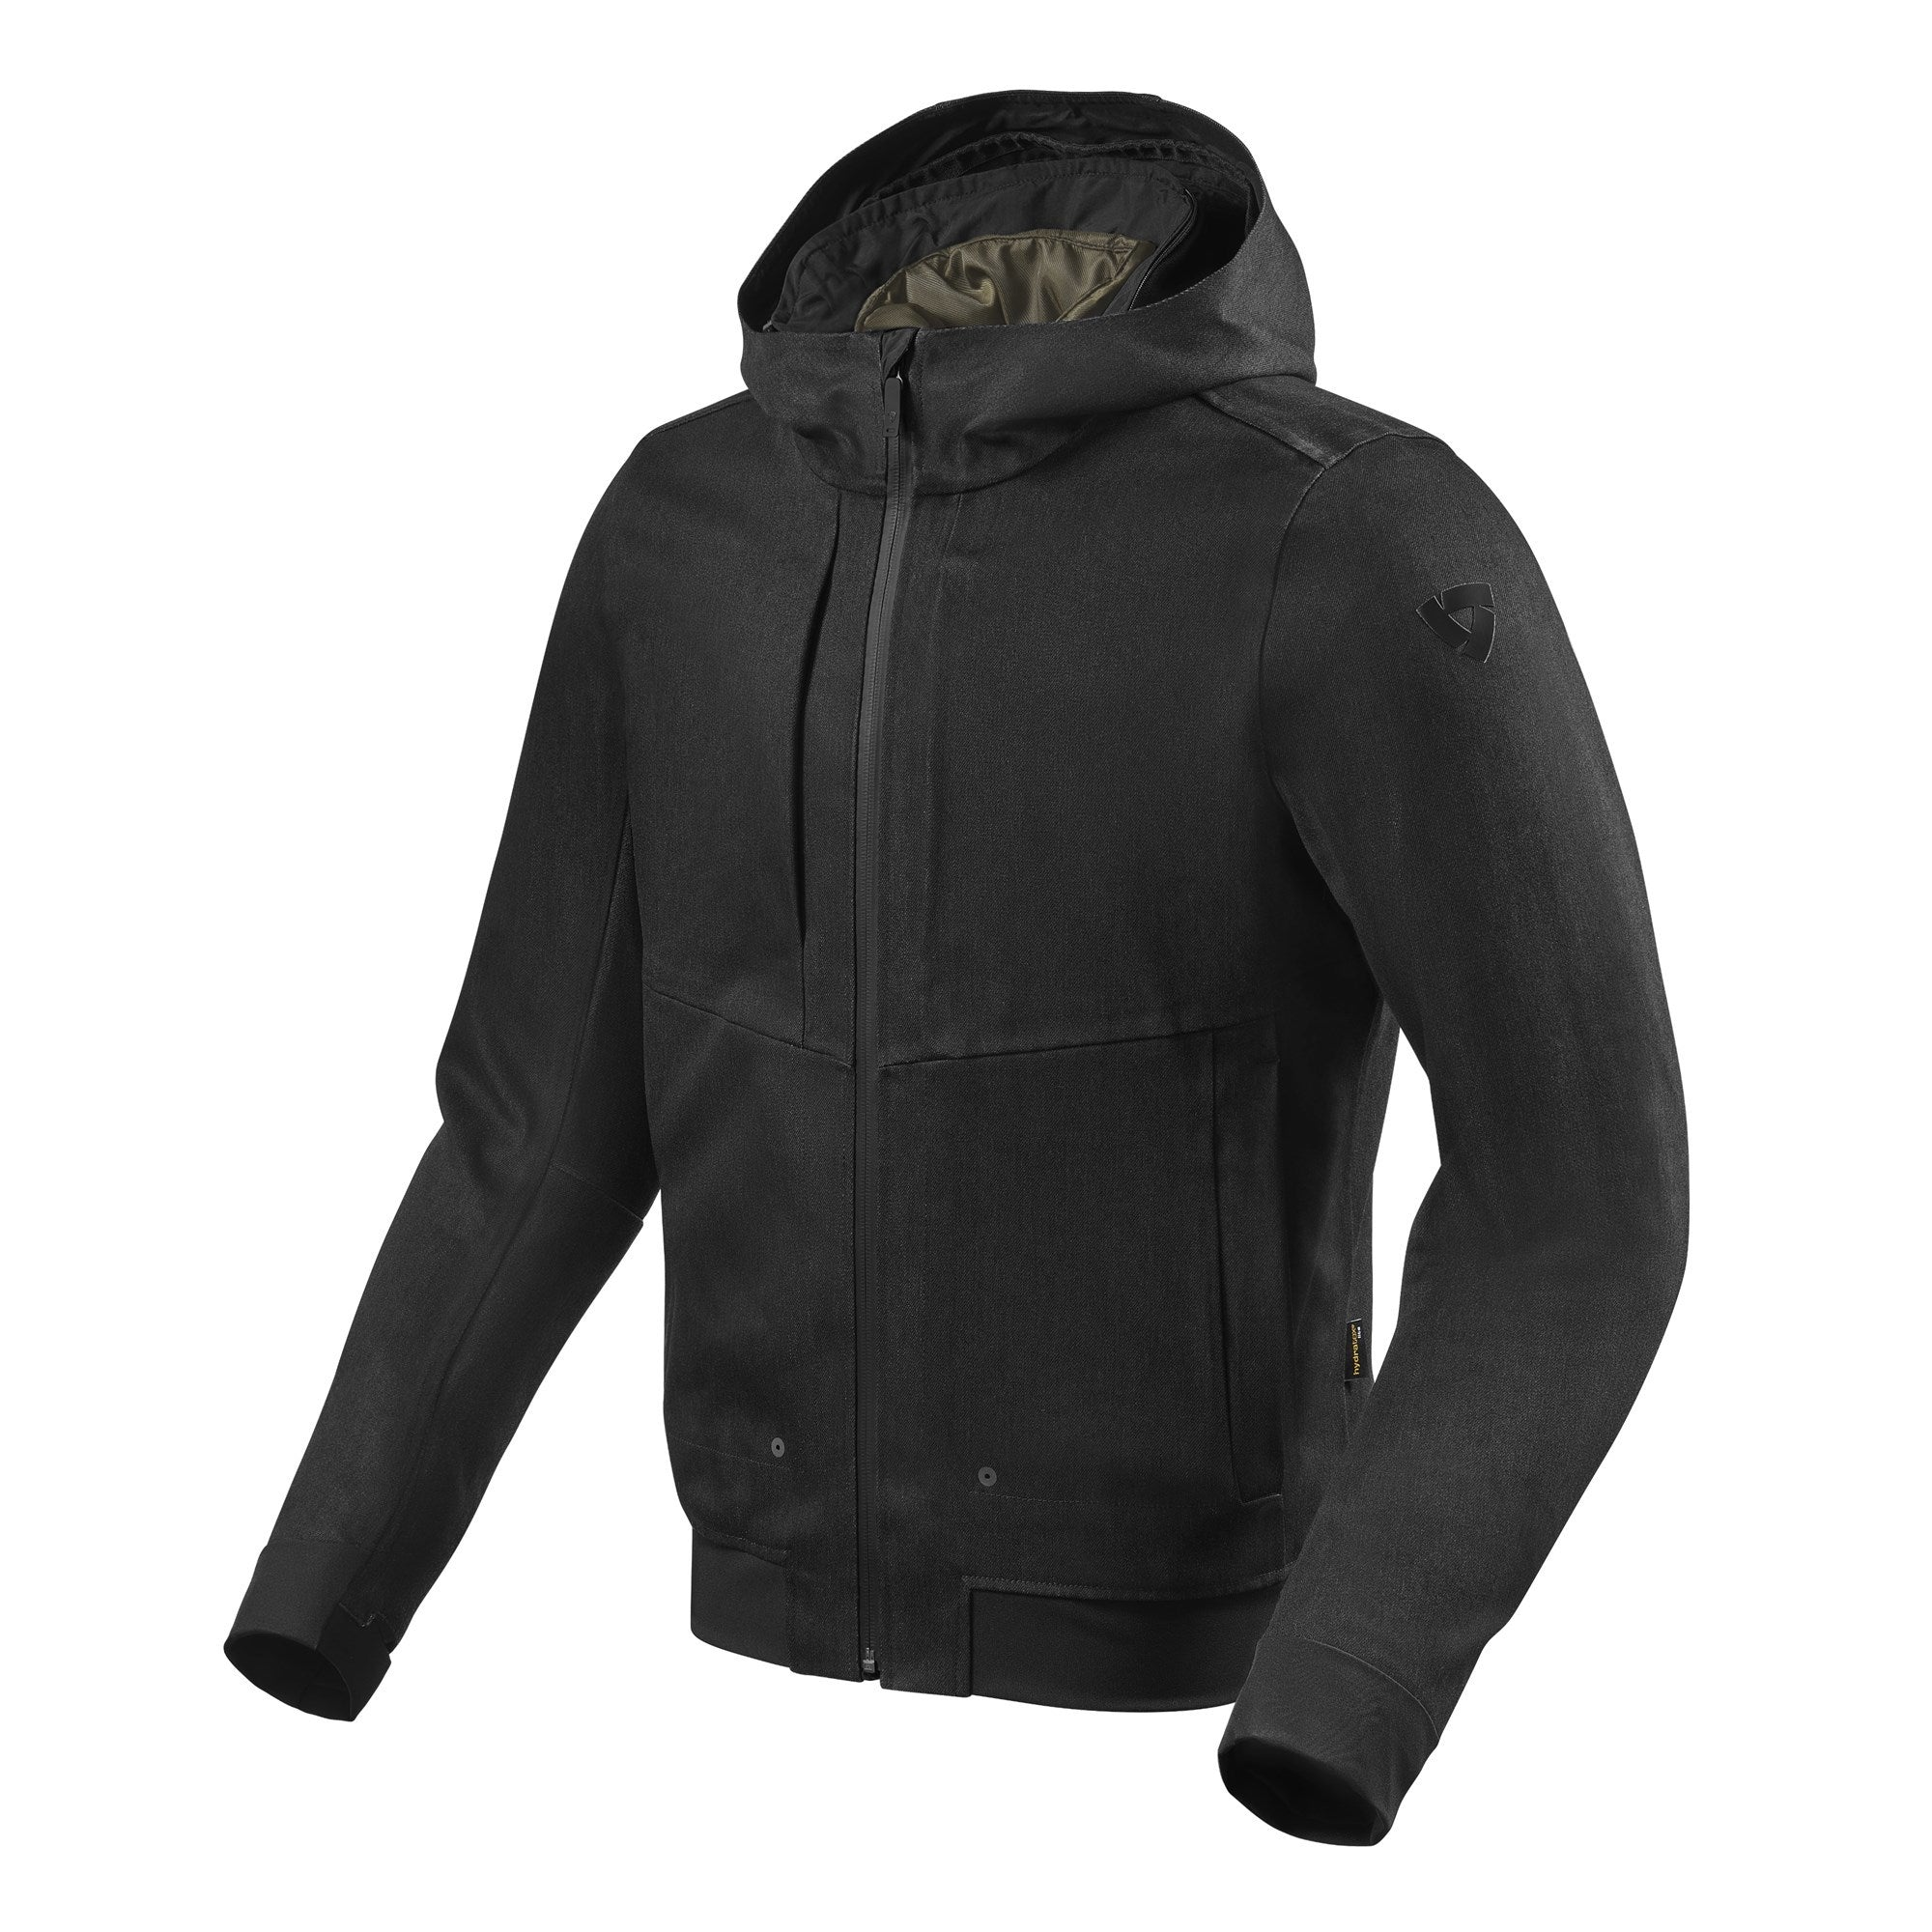 REV'IT! Stealth 2 Hoodie